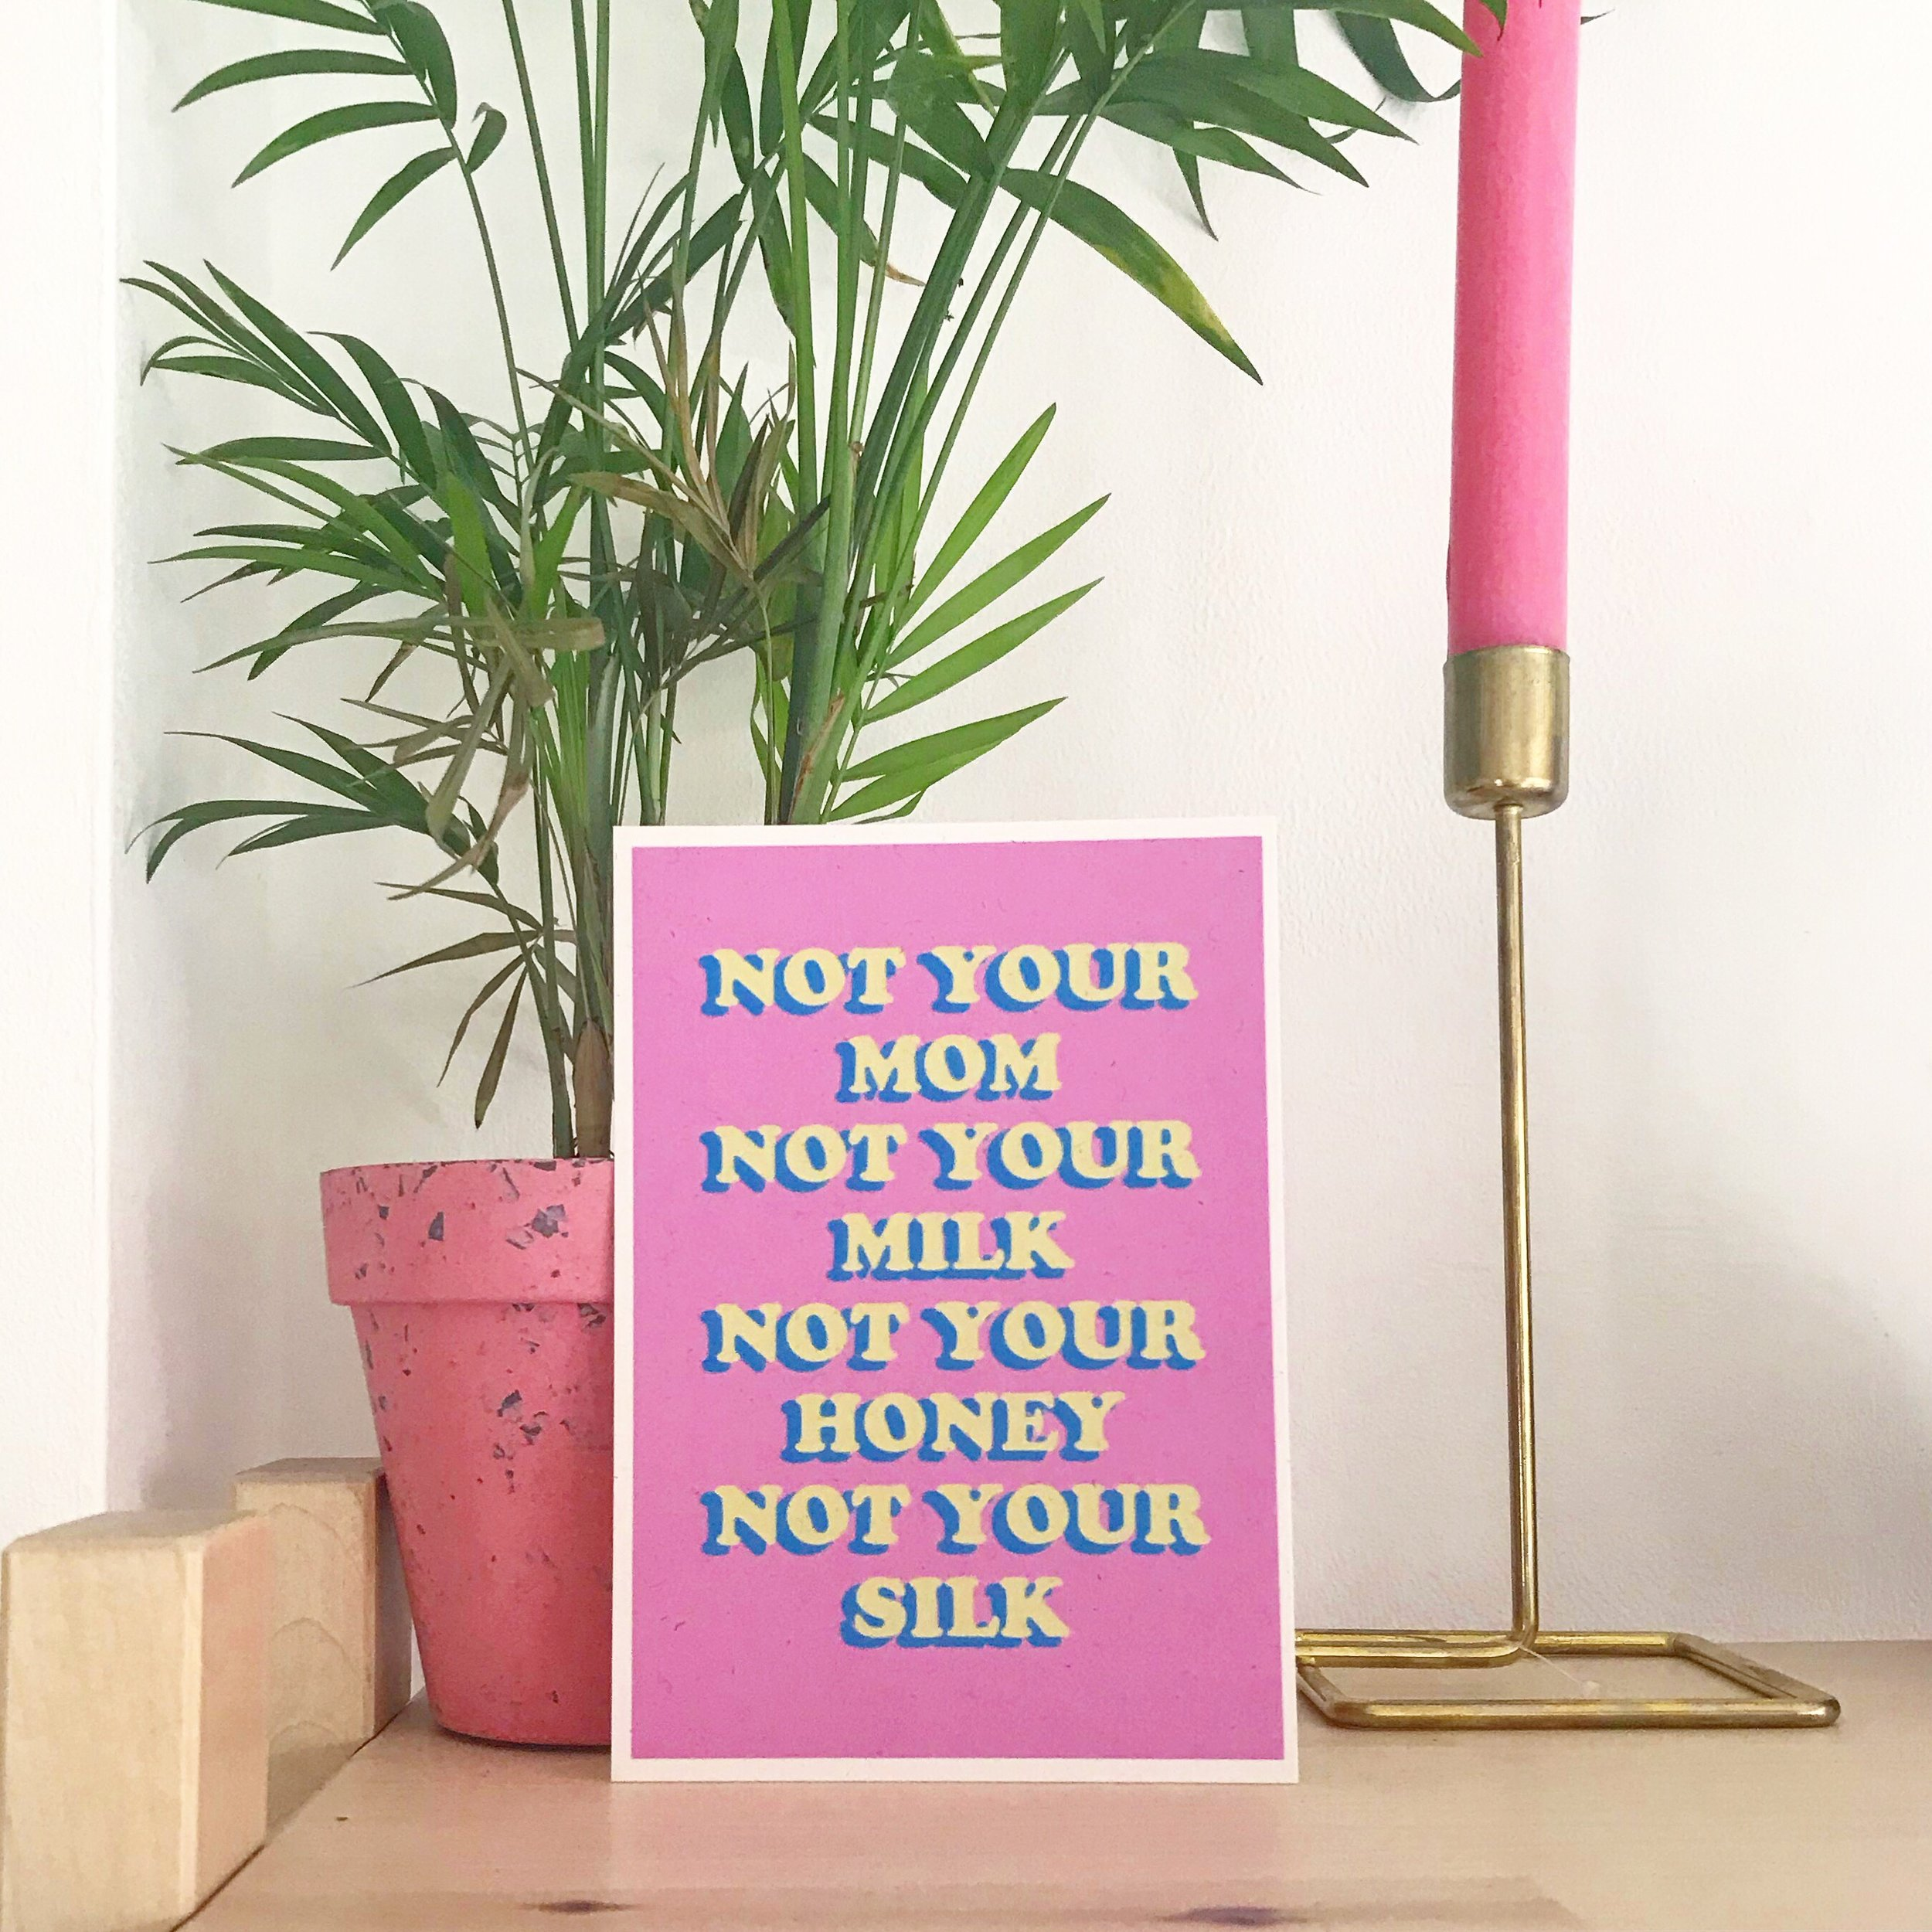 Punky Bunny - not your mom not your milk not your honey not your silk | Vegan Poster | Bright Zine.JPG